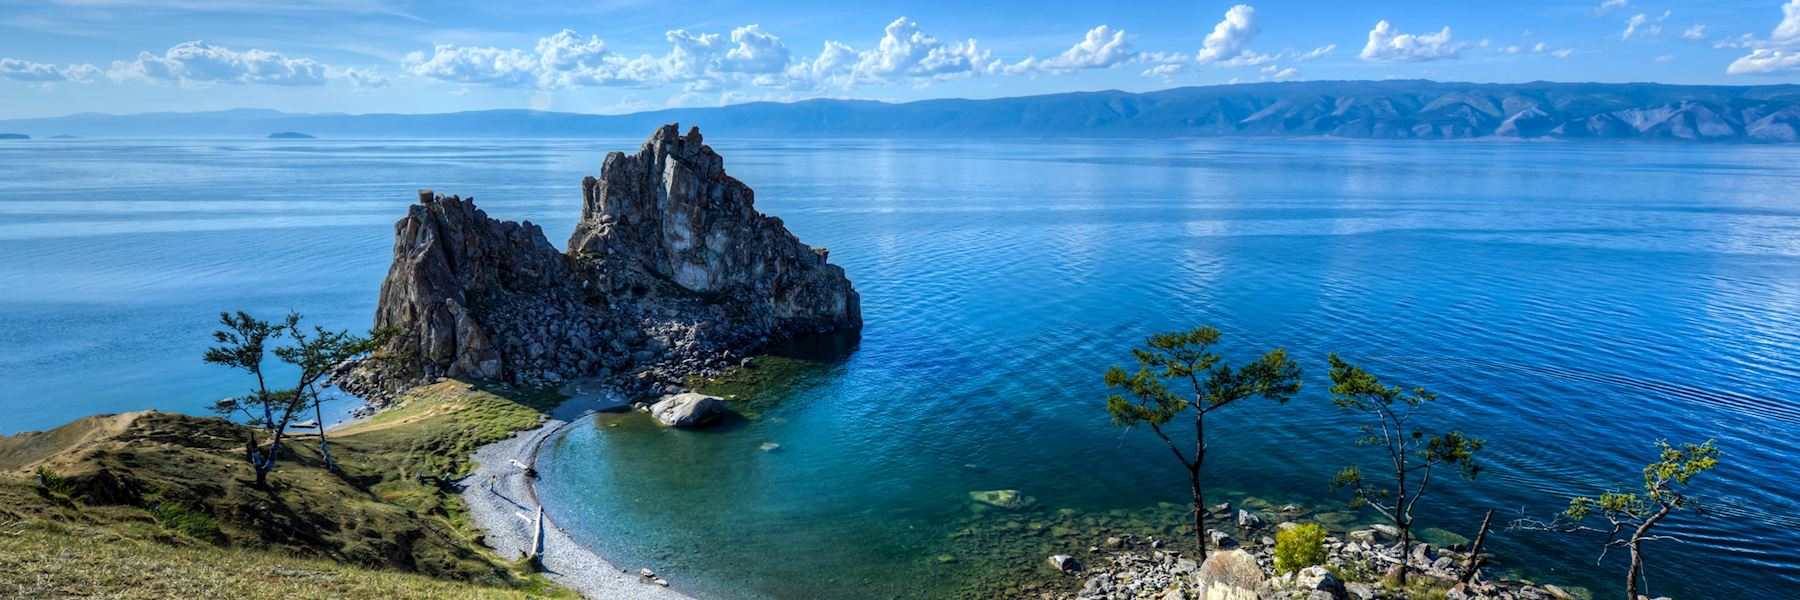 Visit Lake Baikal On A Trip To Russia Audley Travel